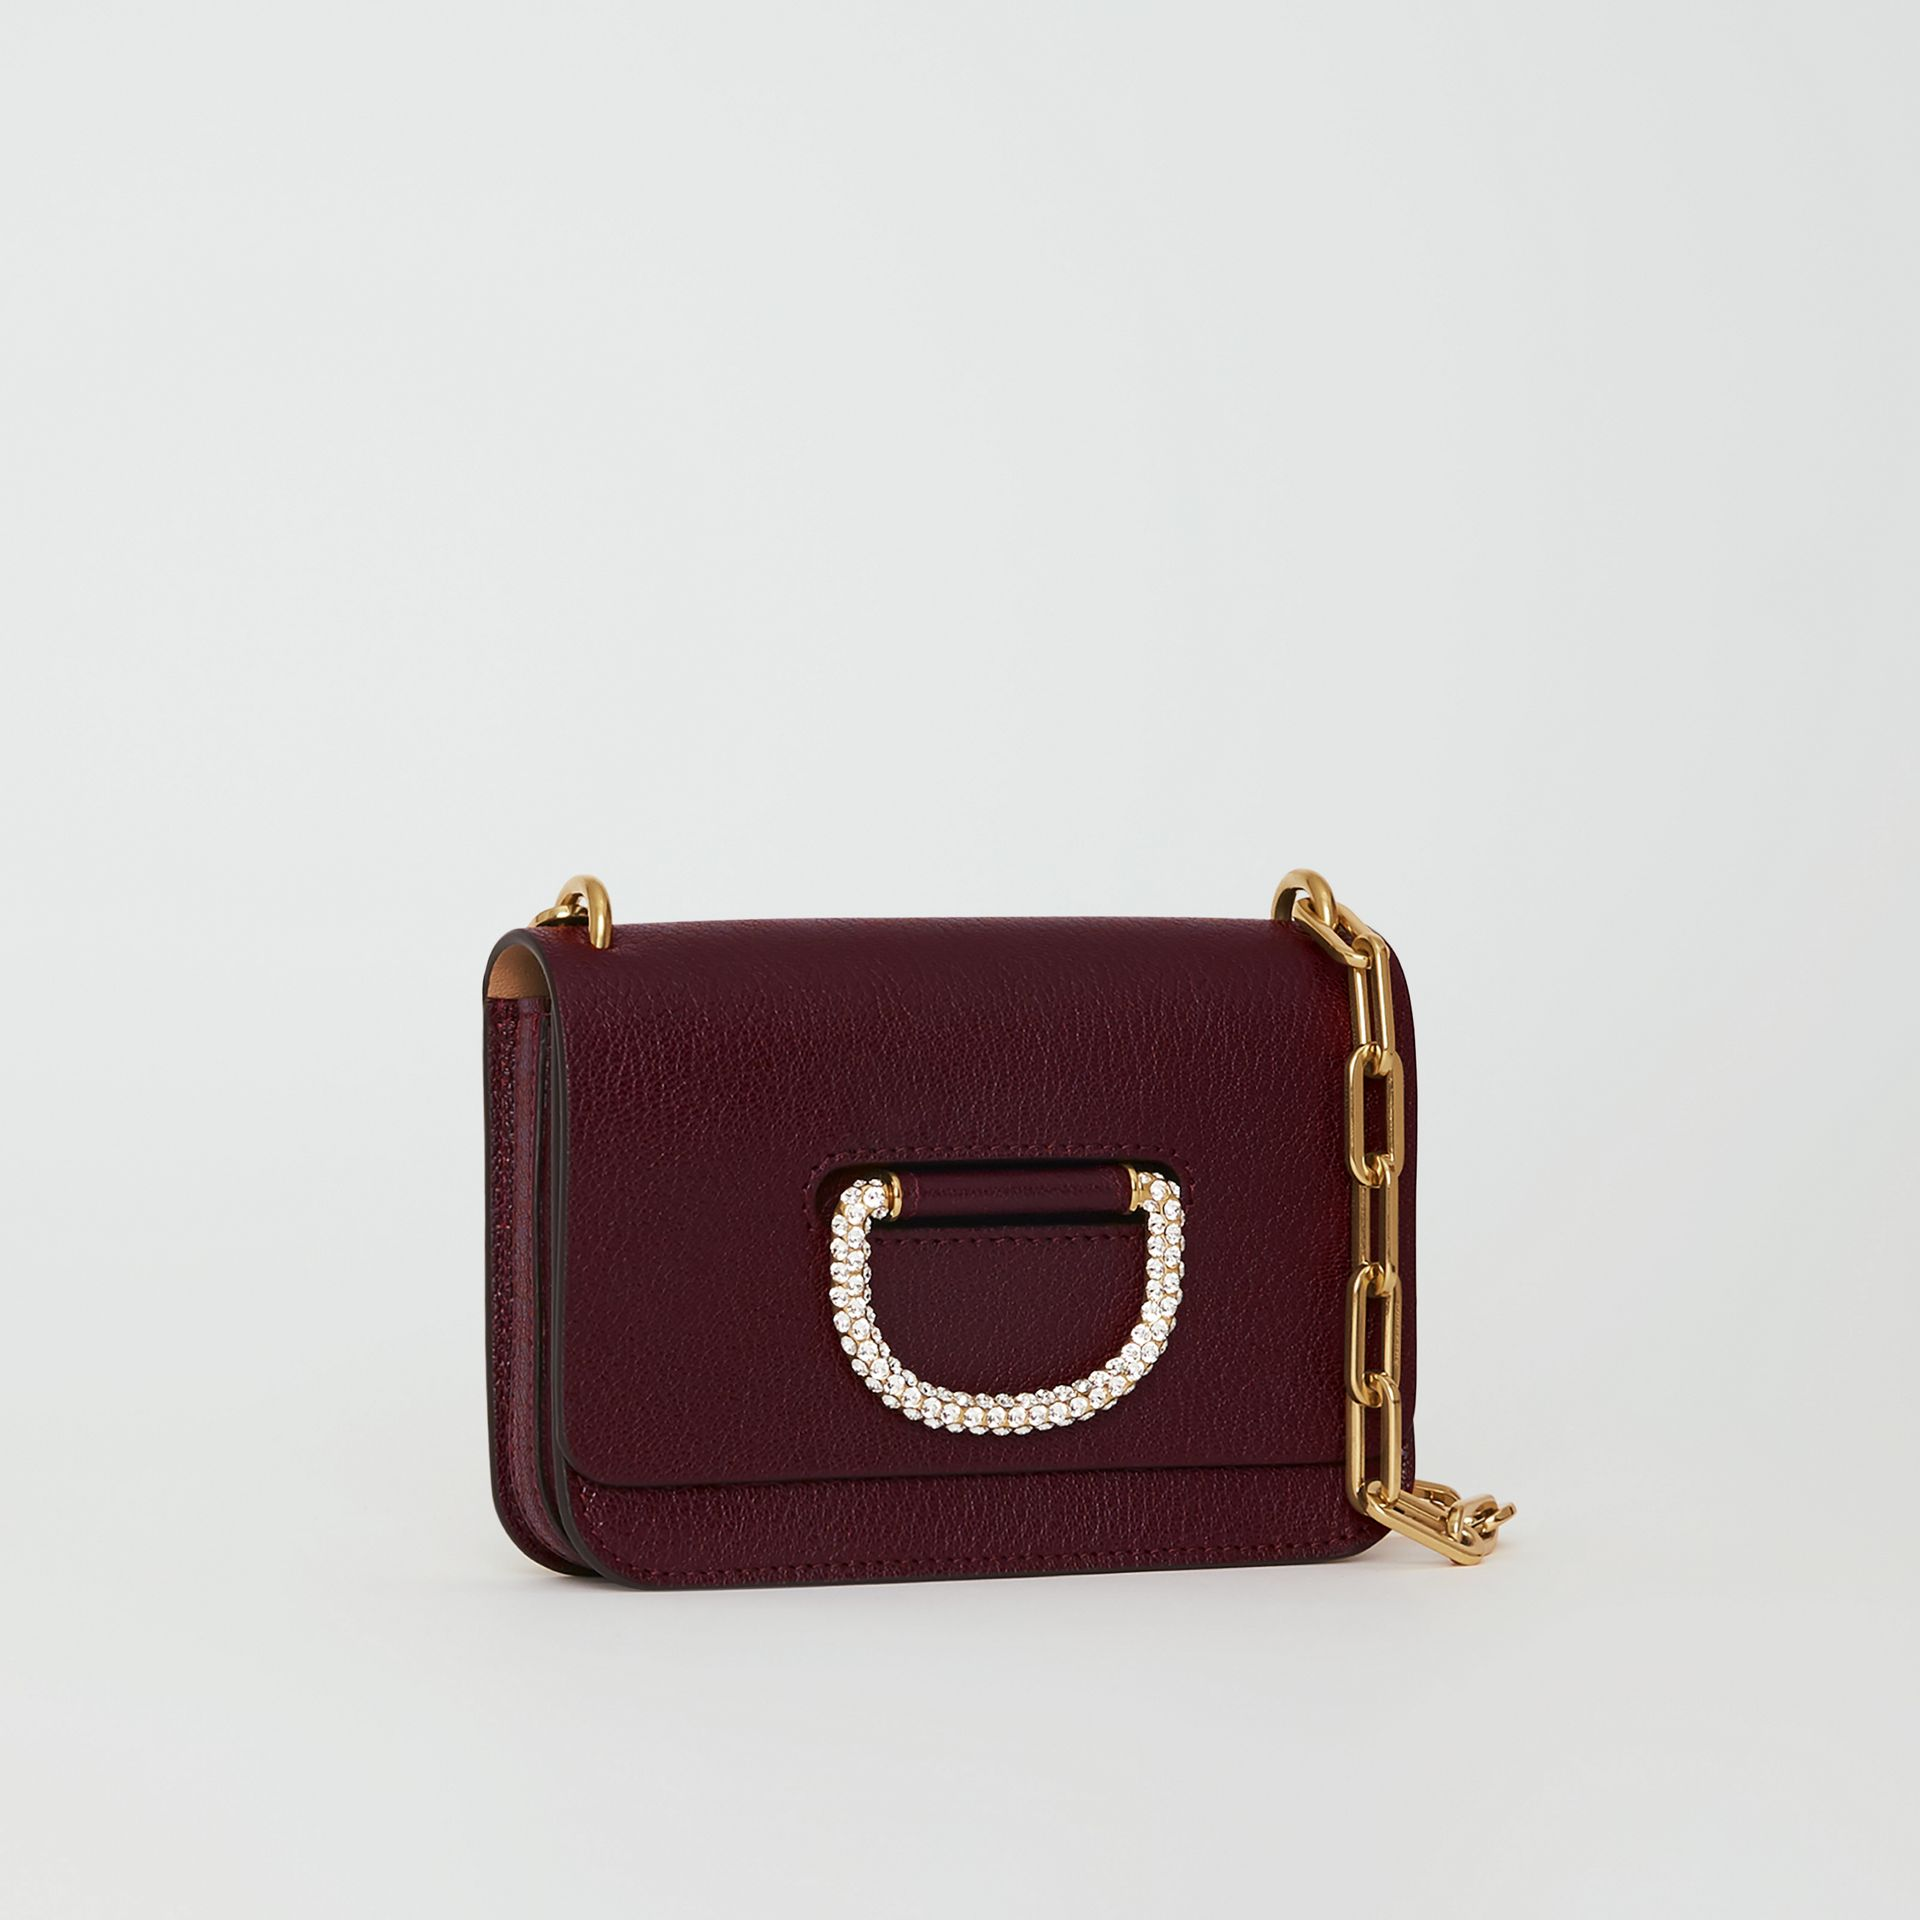 The Mini Leather Crystal D-ring Bag in Deep Claret - Women | Burberry Australia - gallery image 4